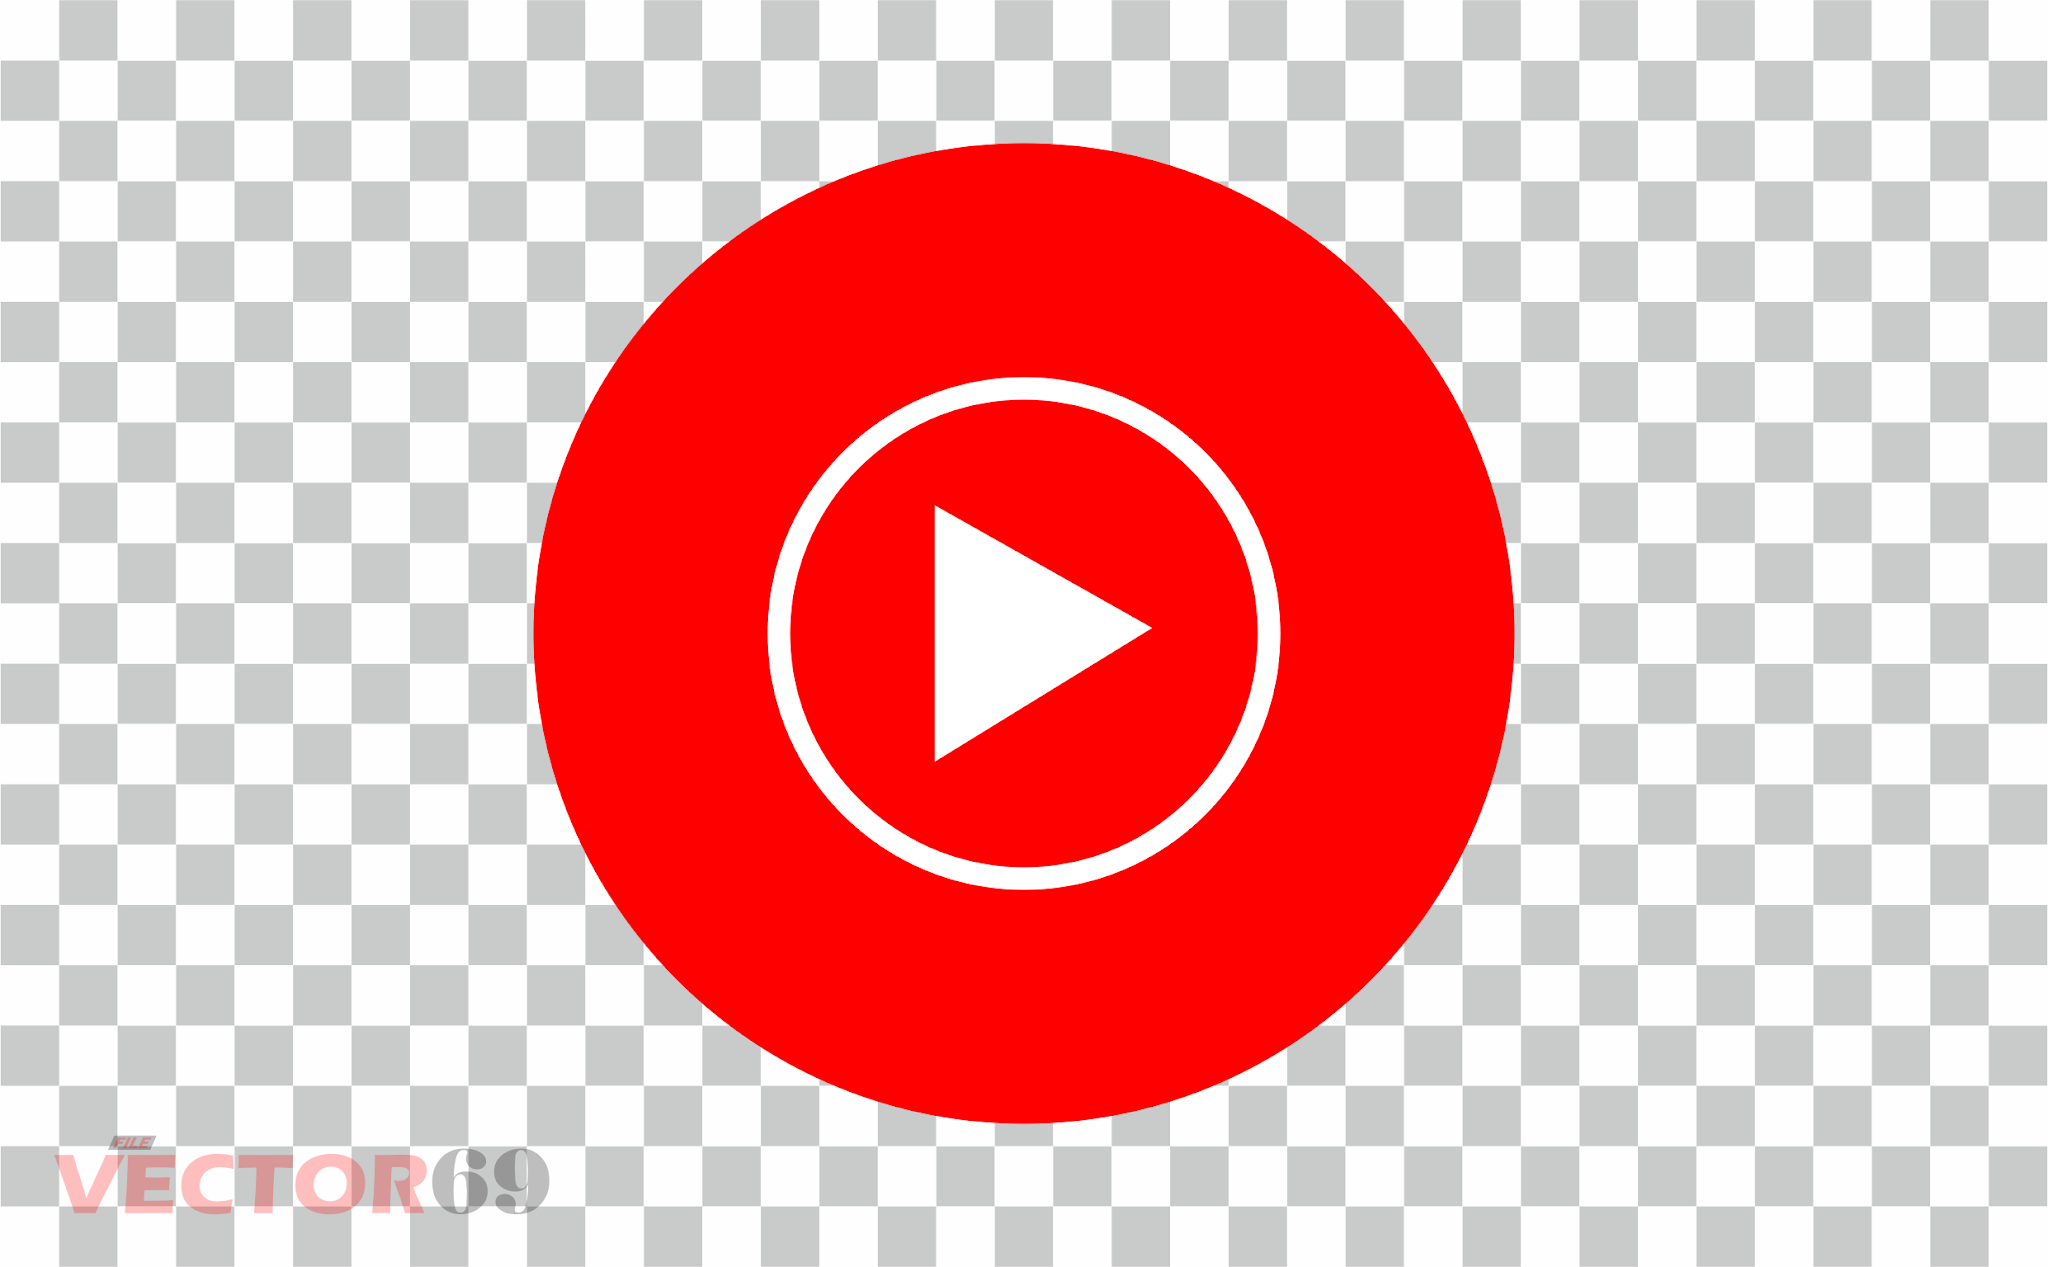 Youtube Music Icon - Download Vector File PNG (Portable Network Graphics)